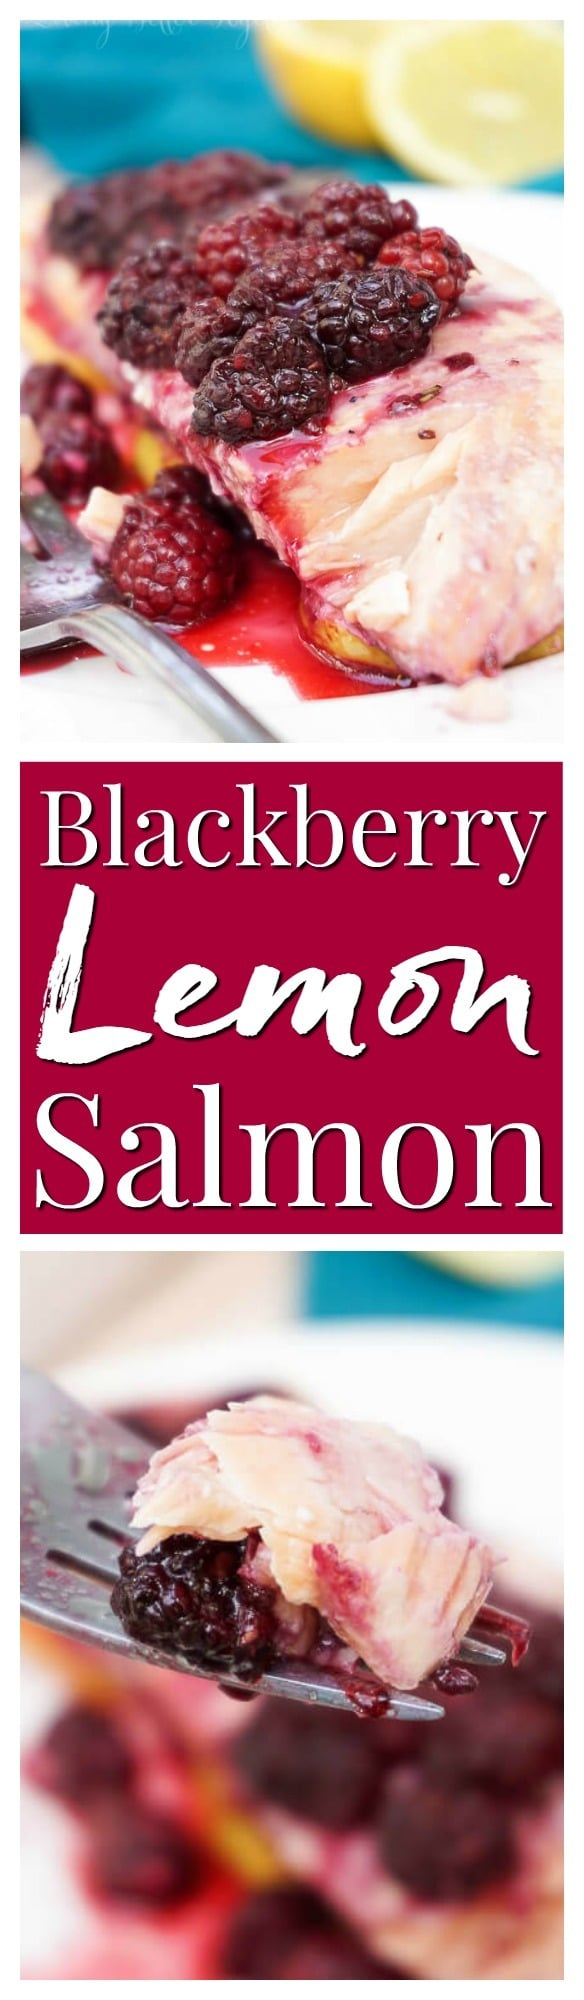 This gorgeous Blackberry Lemon Salmon is a light and flaky dinner recipe that's baked to perfection in just 30 minutes! via @sugarandsoulco